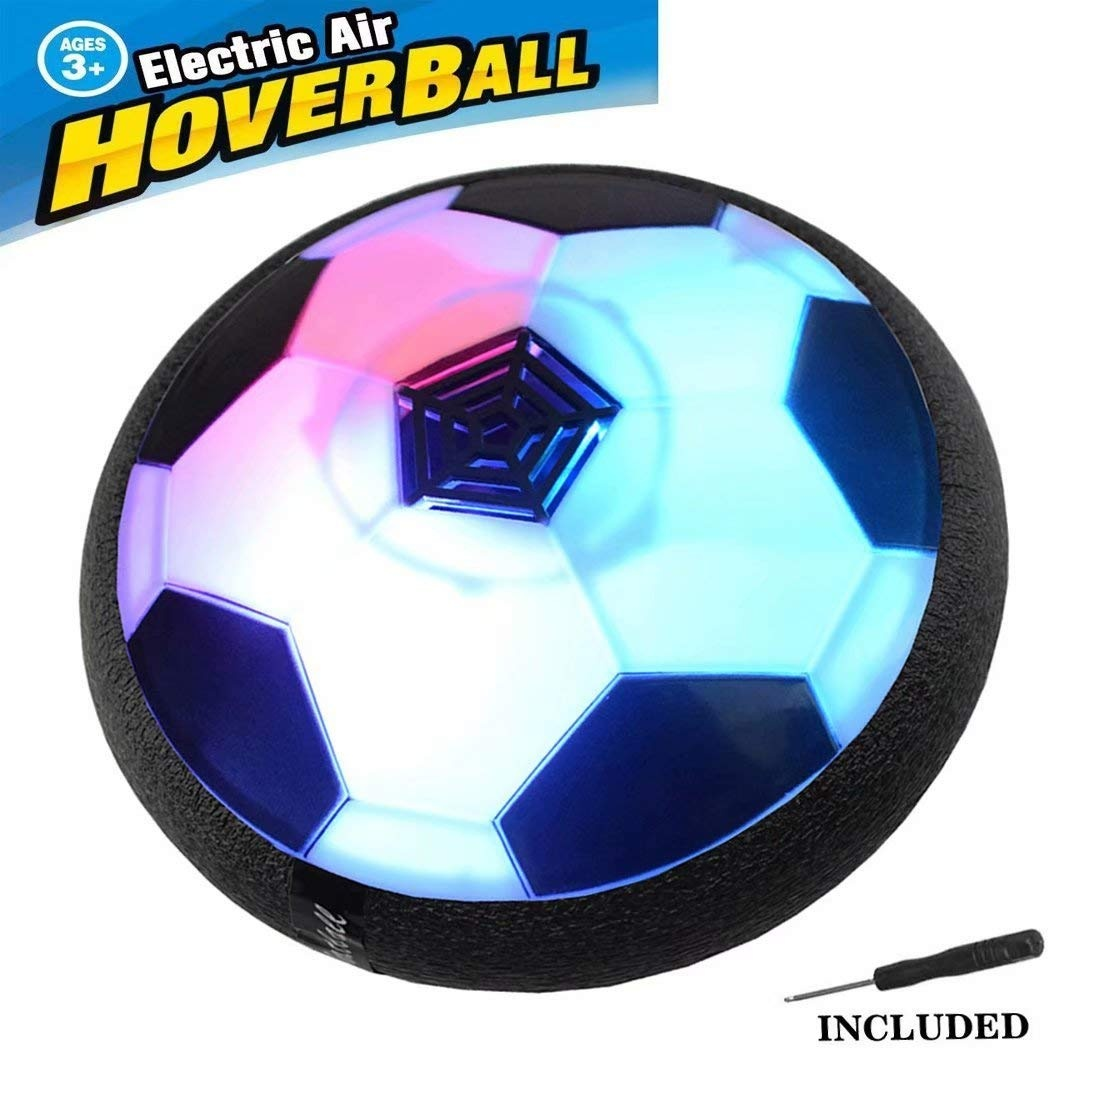 OMG-Kids Toys Hover Soccer Ball Air Soccer with Led Light Excellent Time Killer for Boys//Girls Hovering Soccer Ball with Foam Bumper for Indoor Games